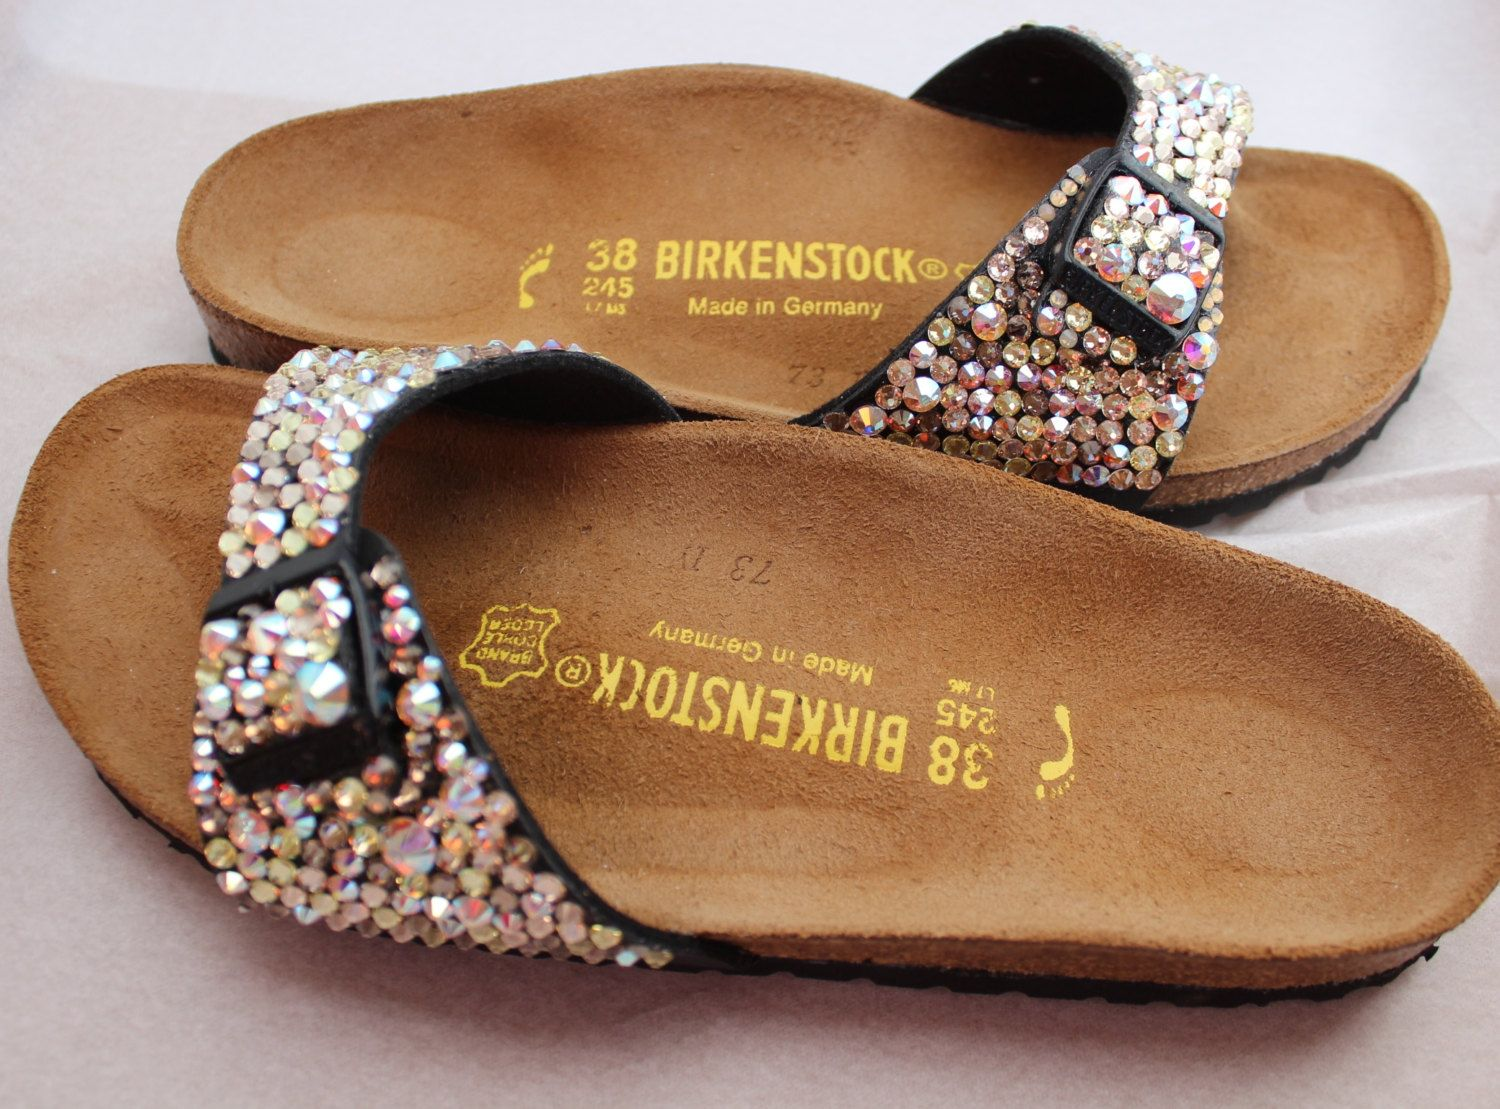 ced2cab96df Rhinestone Birkenstock Madrid Sandal with Swarovski Elements by birkdazzle  on Etsy